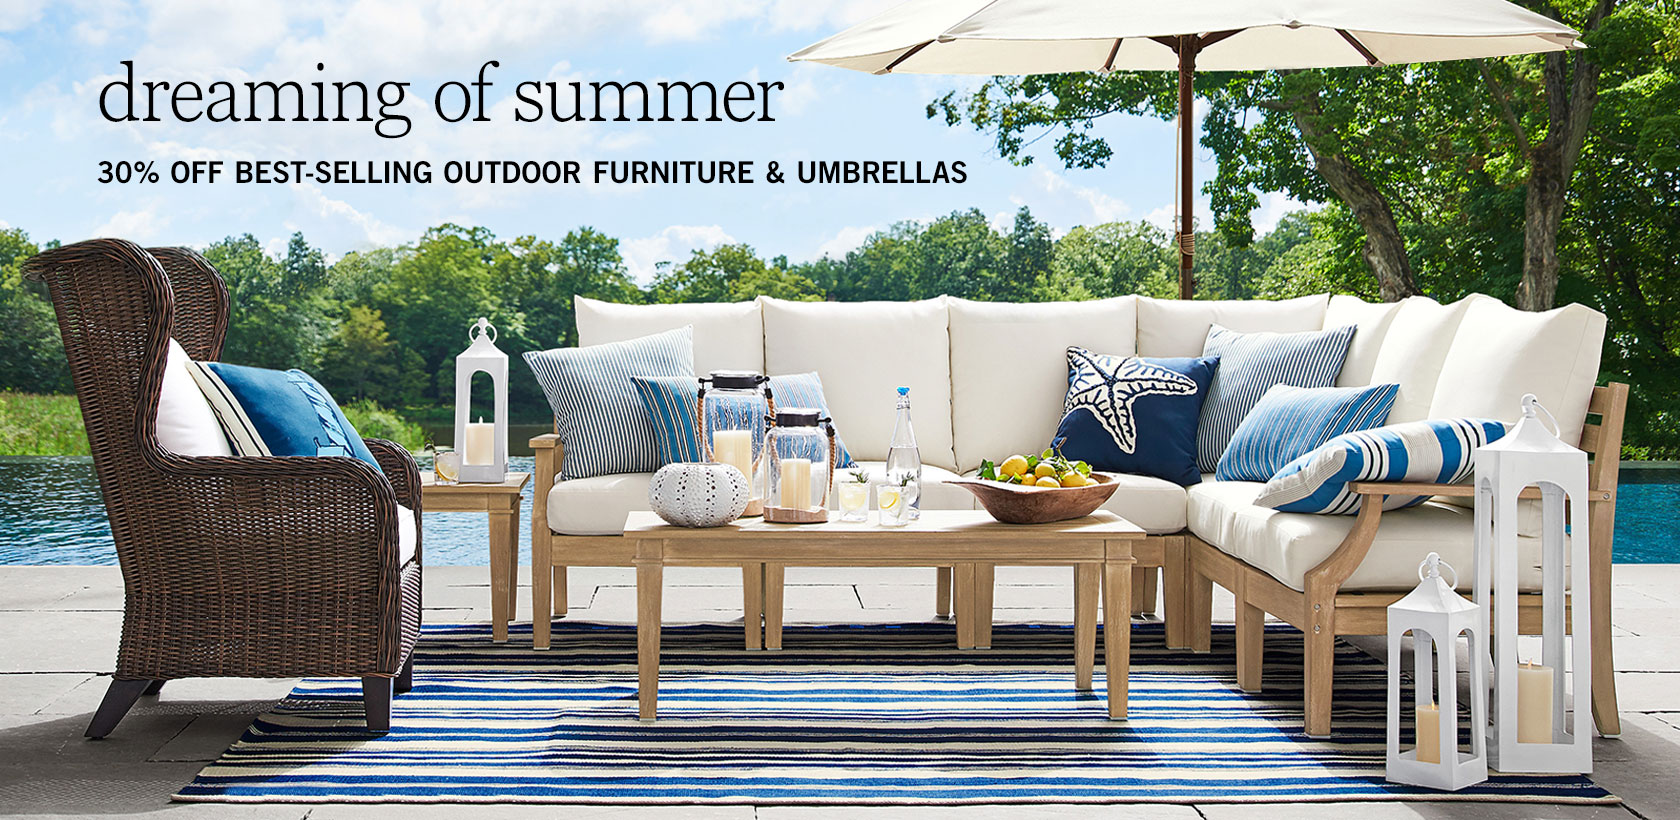 Outdoor Furniture & Umbrellas Sale